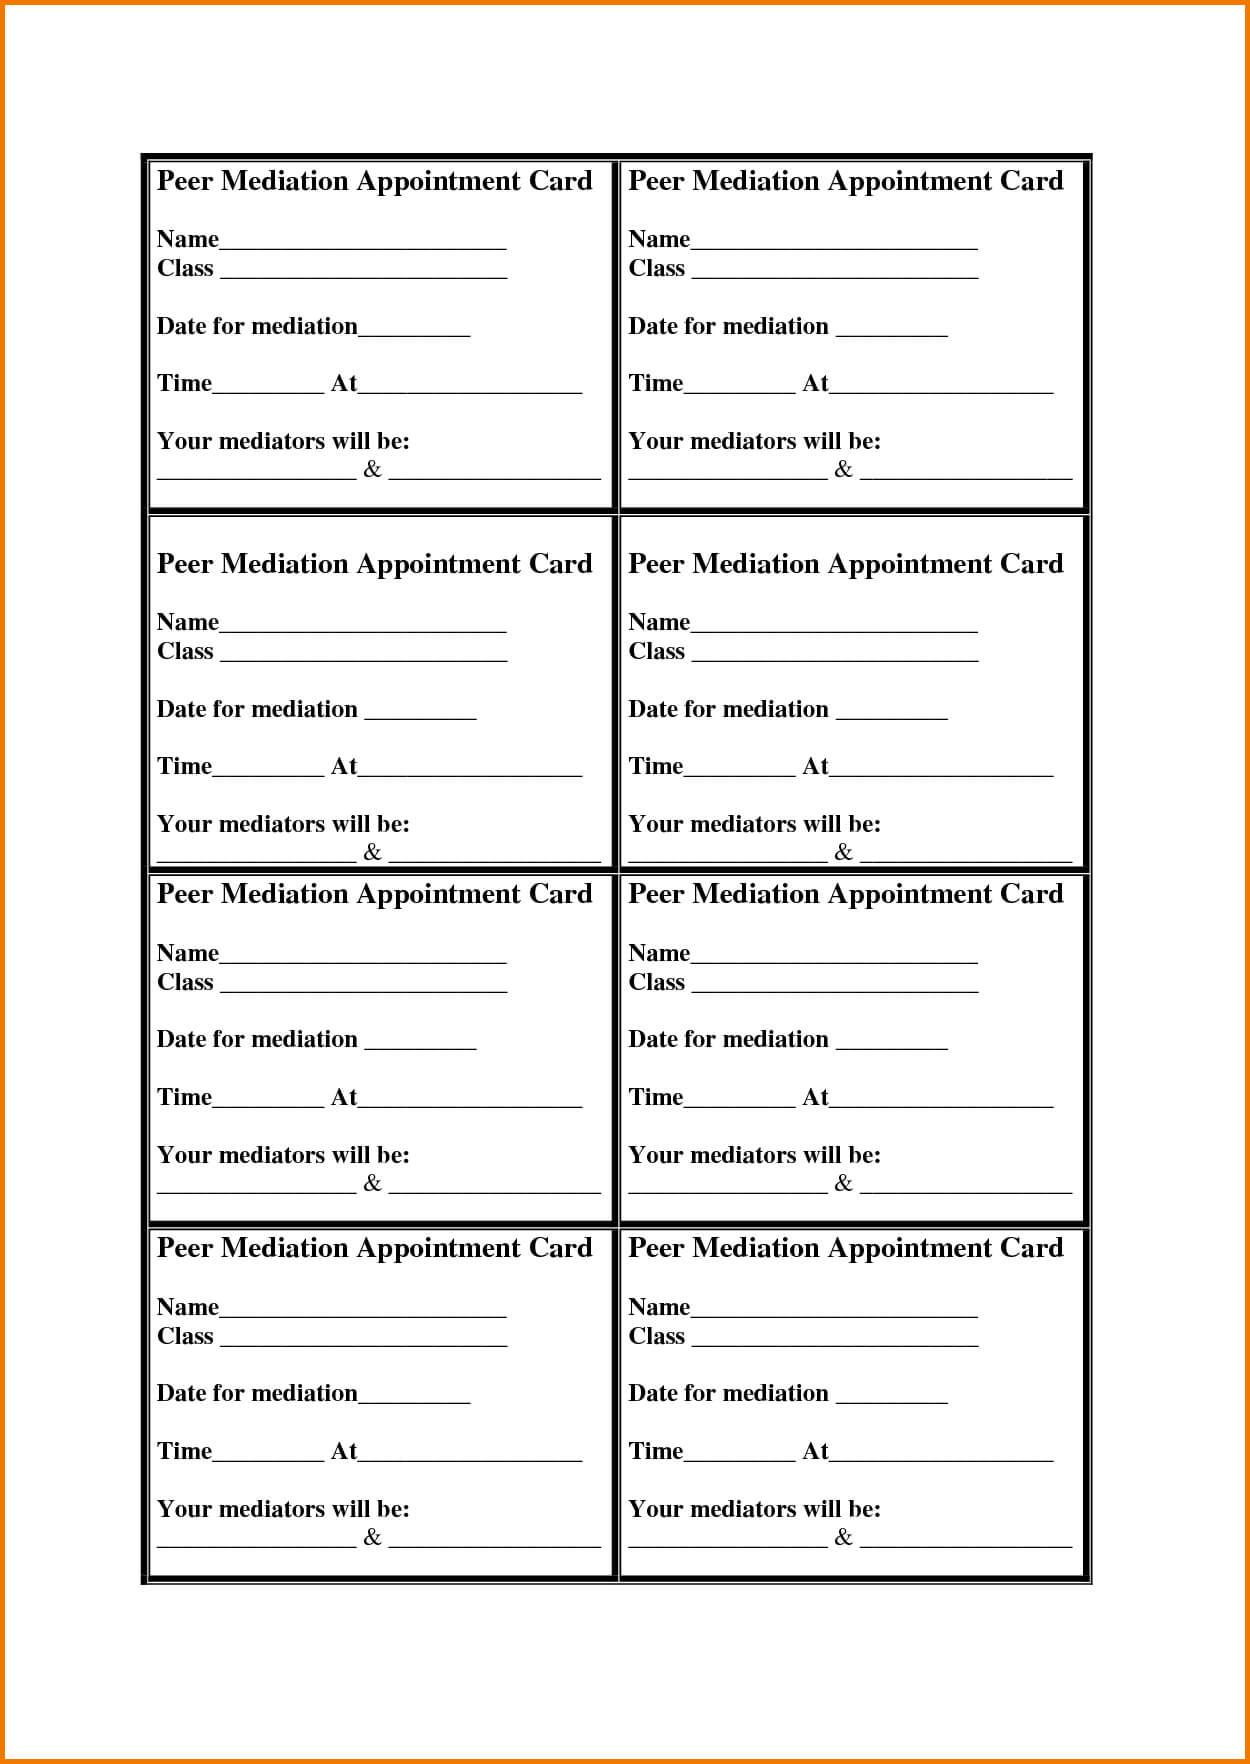 Appointment Cards Template | Authorization Letter Pdf Within Appointment Card Template Word